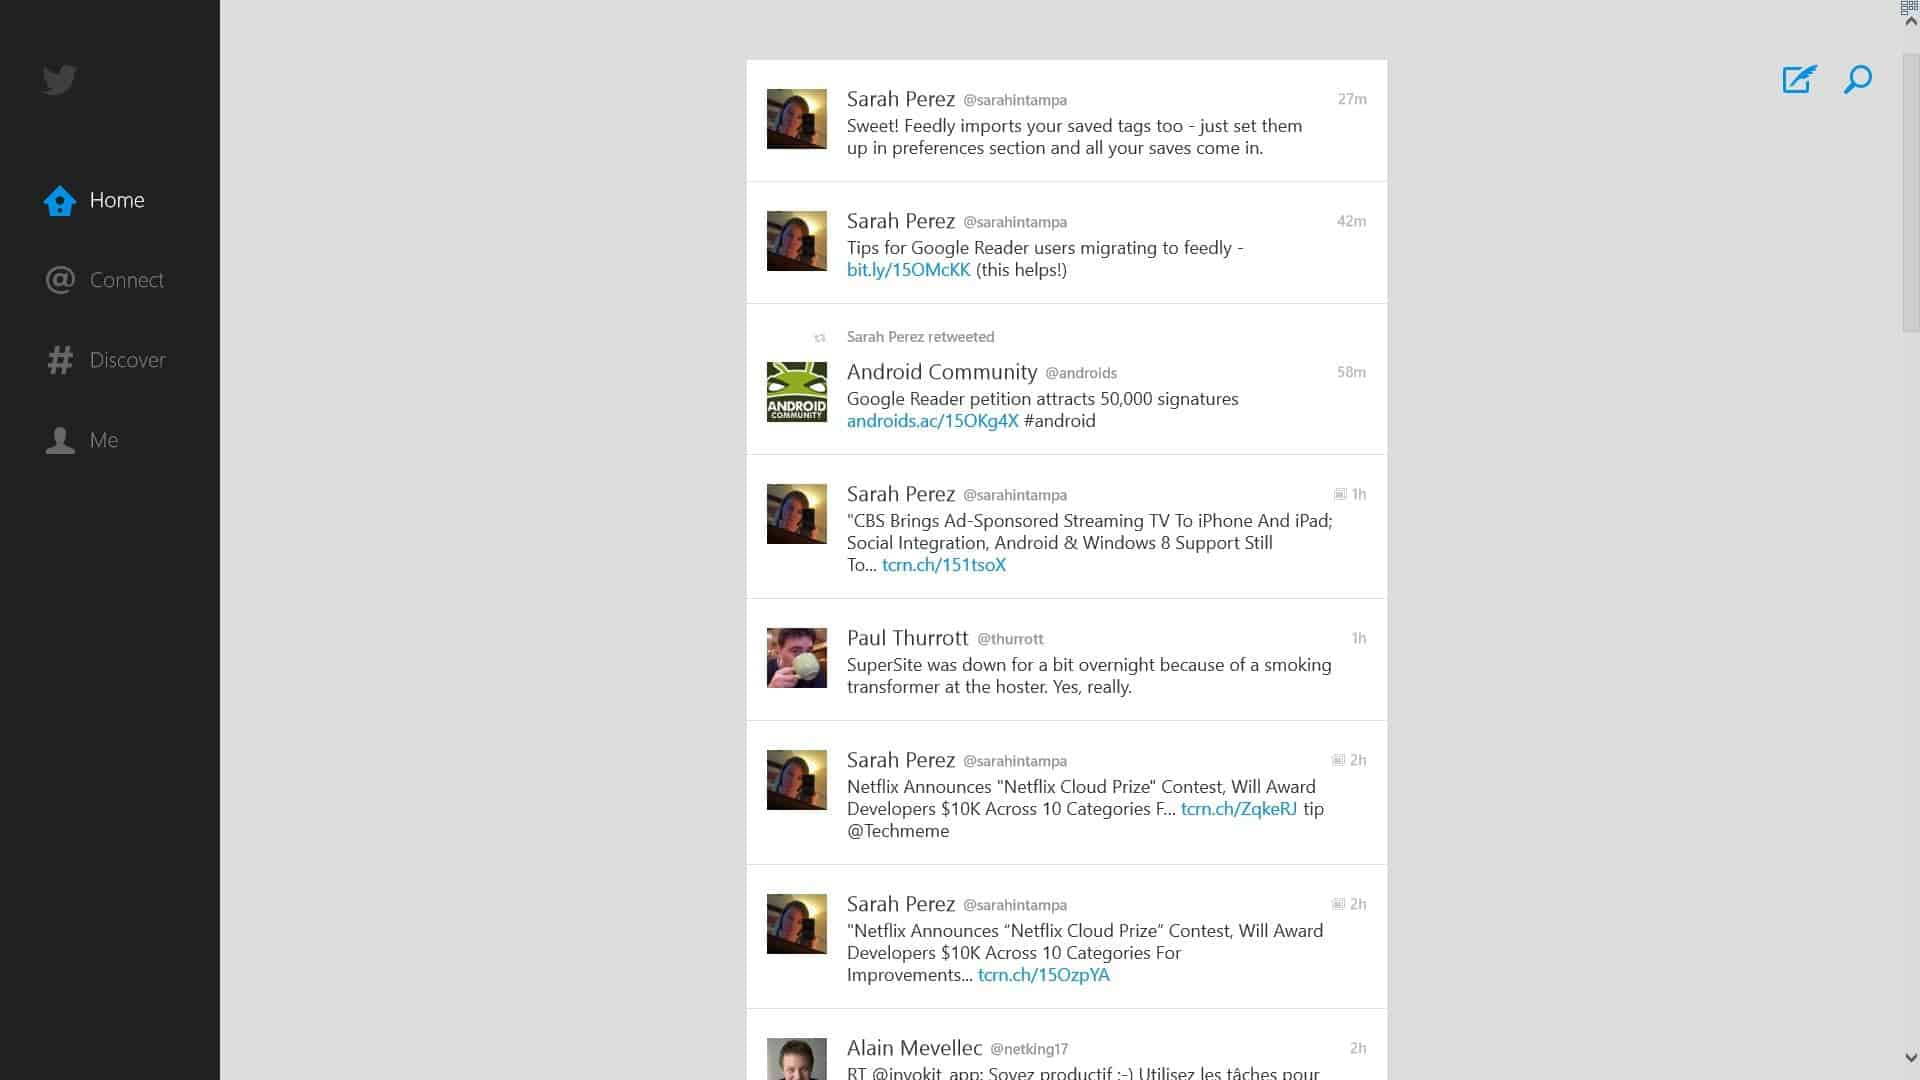 Windows 8 users mixed on the new twitter app.